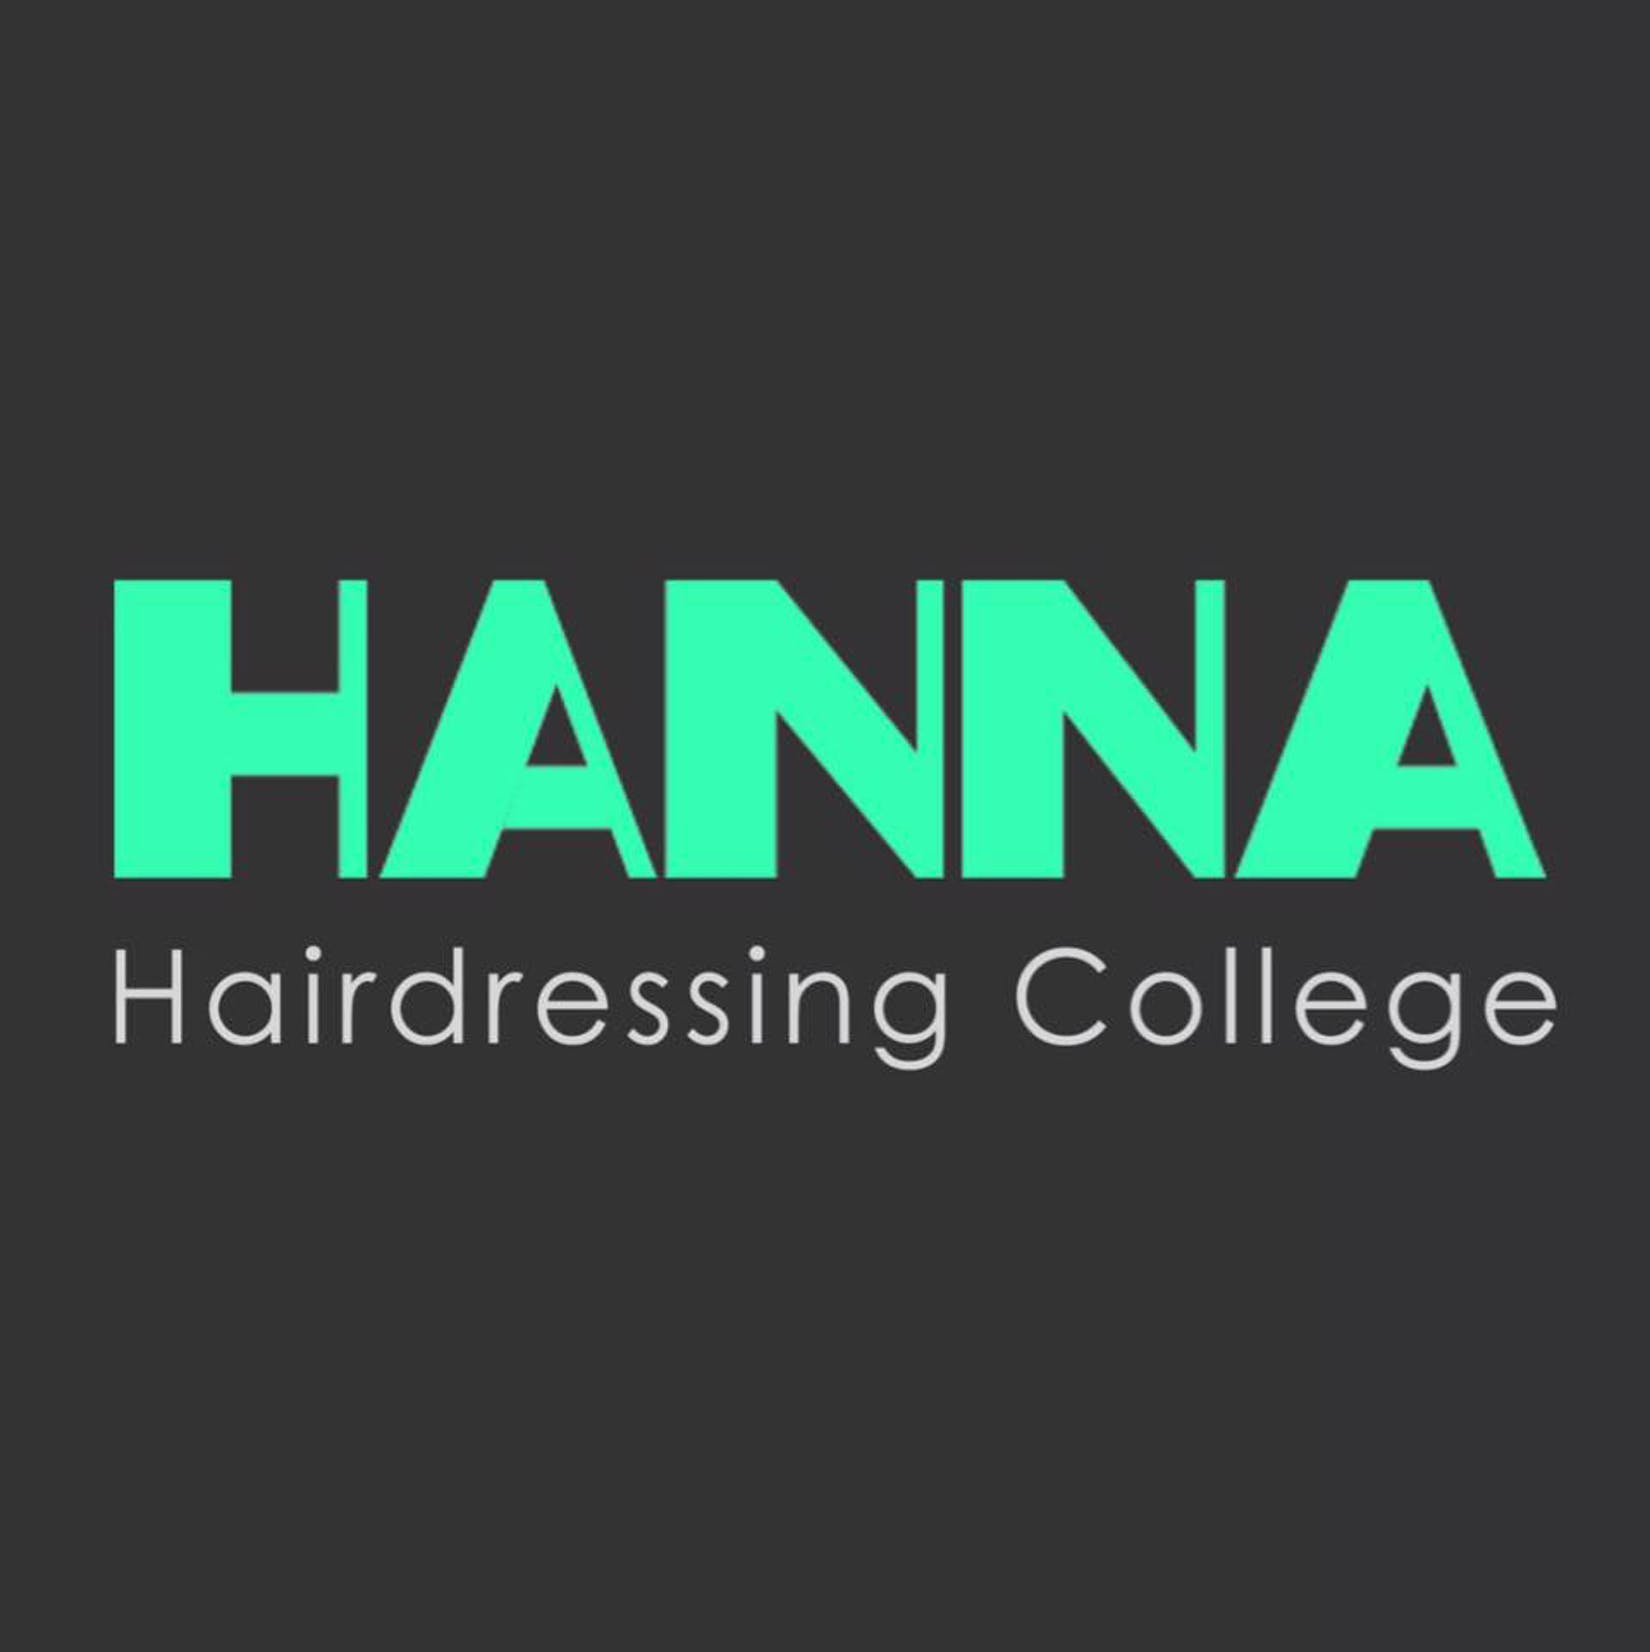 HANNA Hairdressing College | Beauty